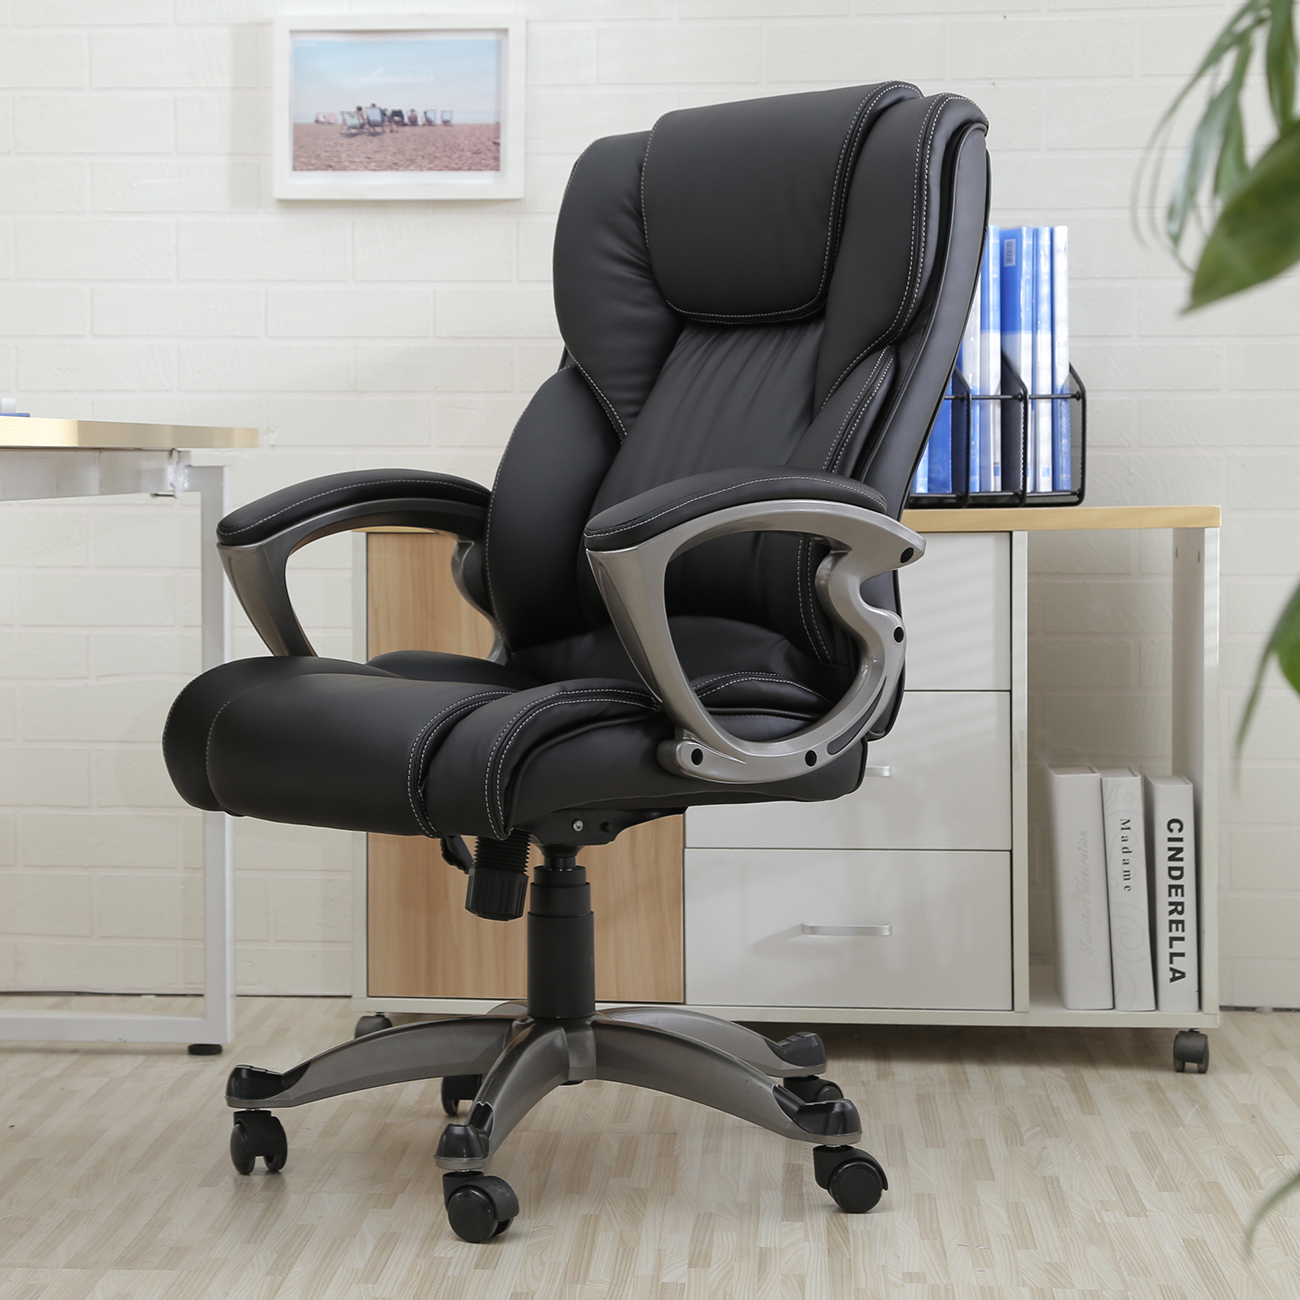 Comfortable Office Chairs Black Pu Leather High Back Office Chair Executive Task